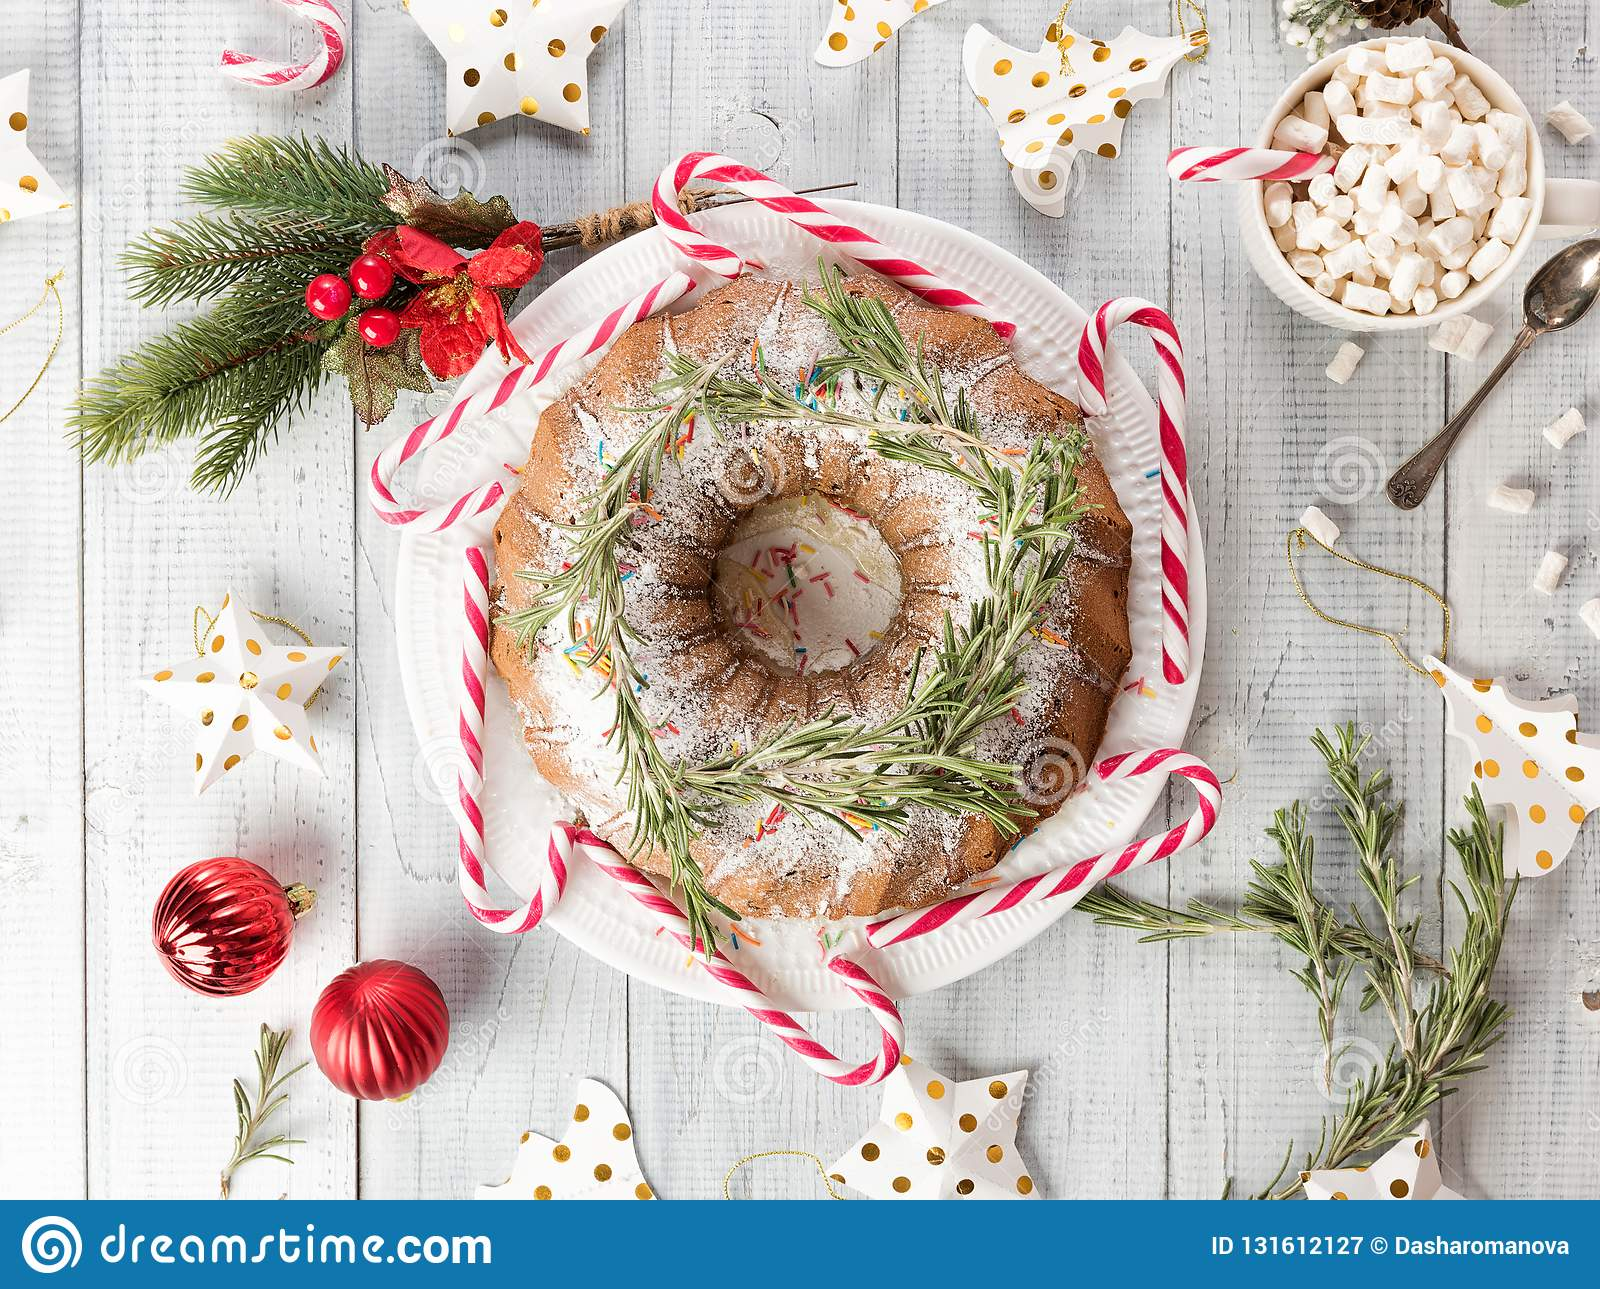 Christmas fruitcake on a white wooden table. Homemade pudding with festive decorations, candy canes